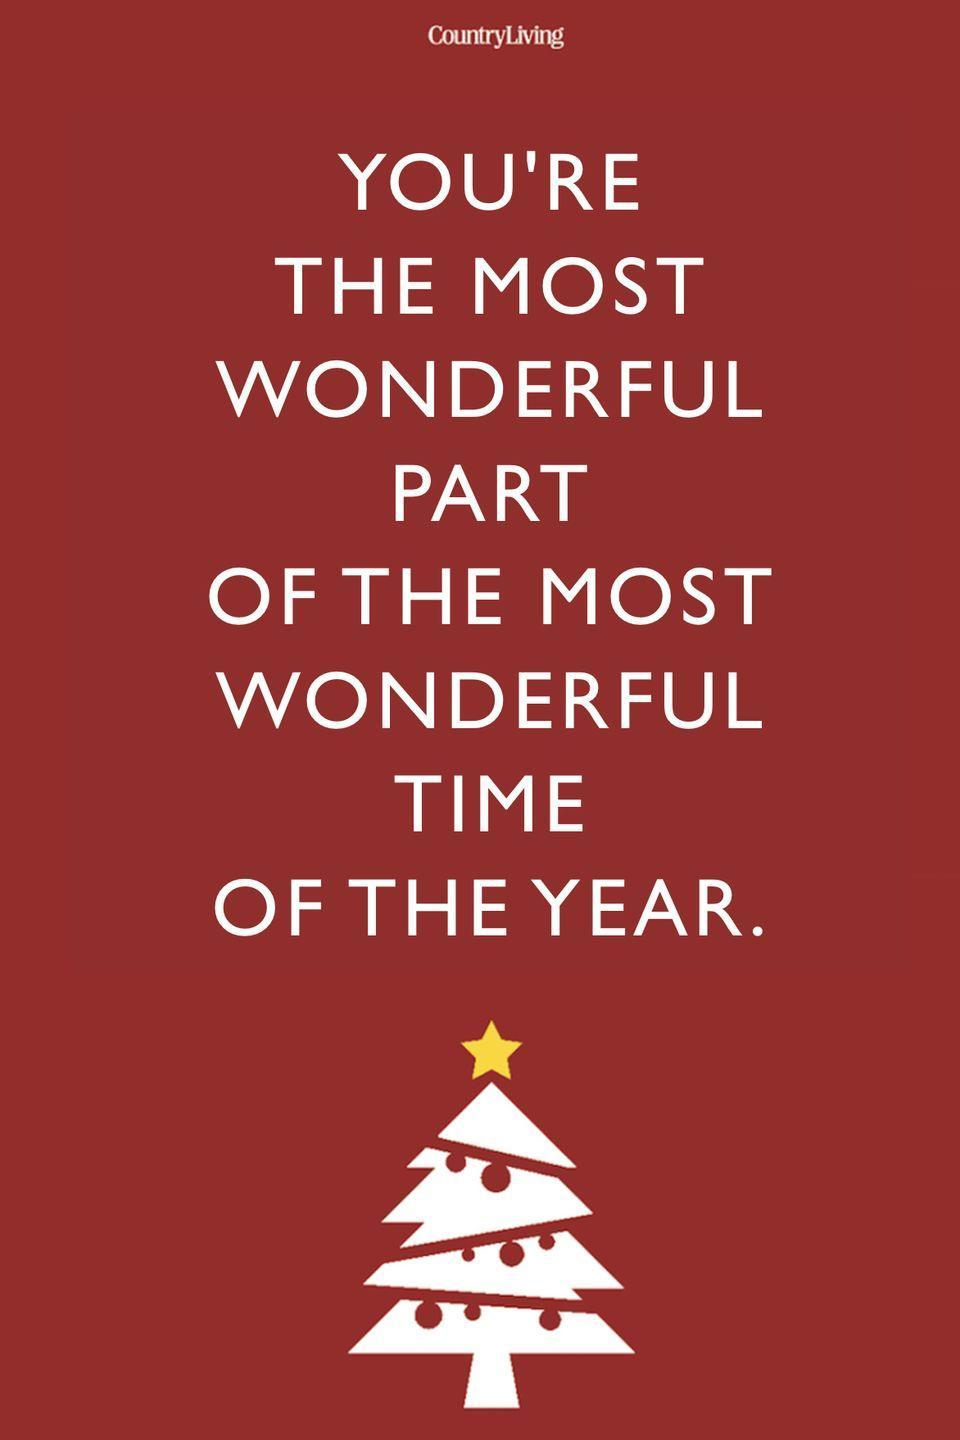 <p>You're the most wonderful part of the most wonderful time of the year. </p>